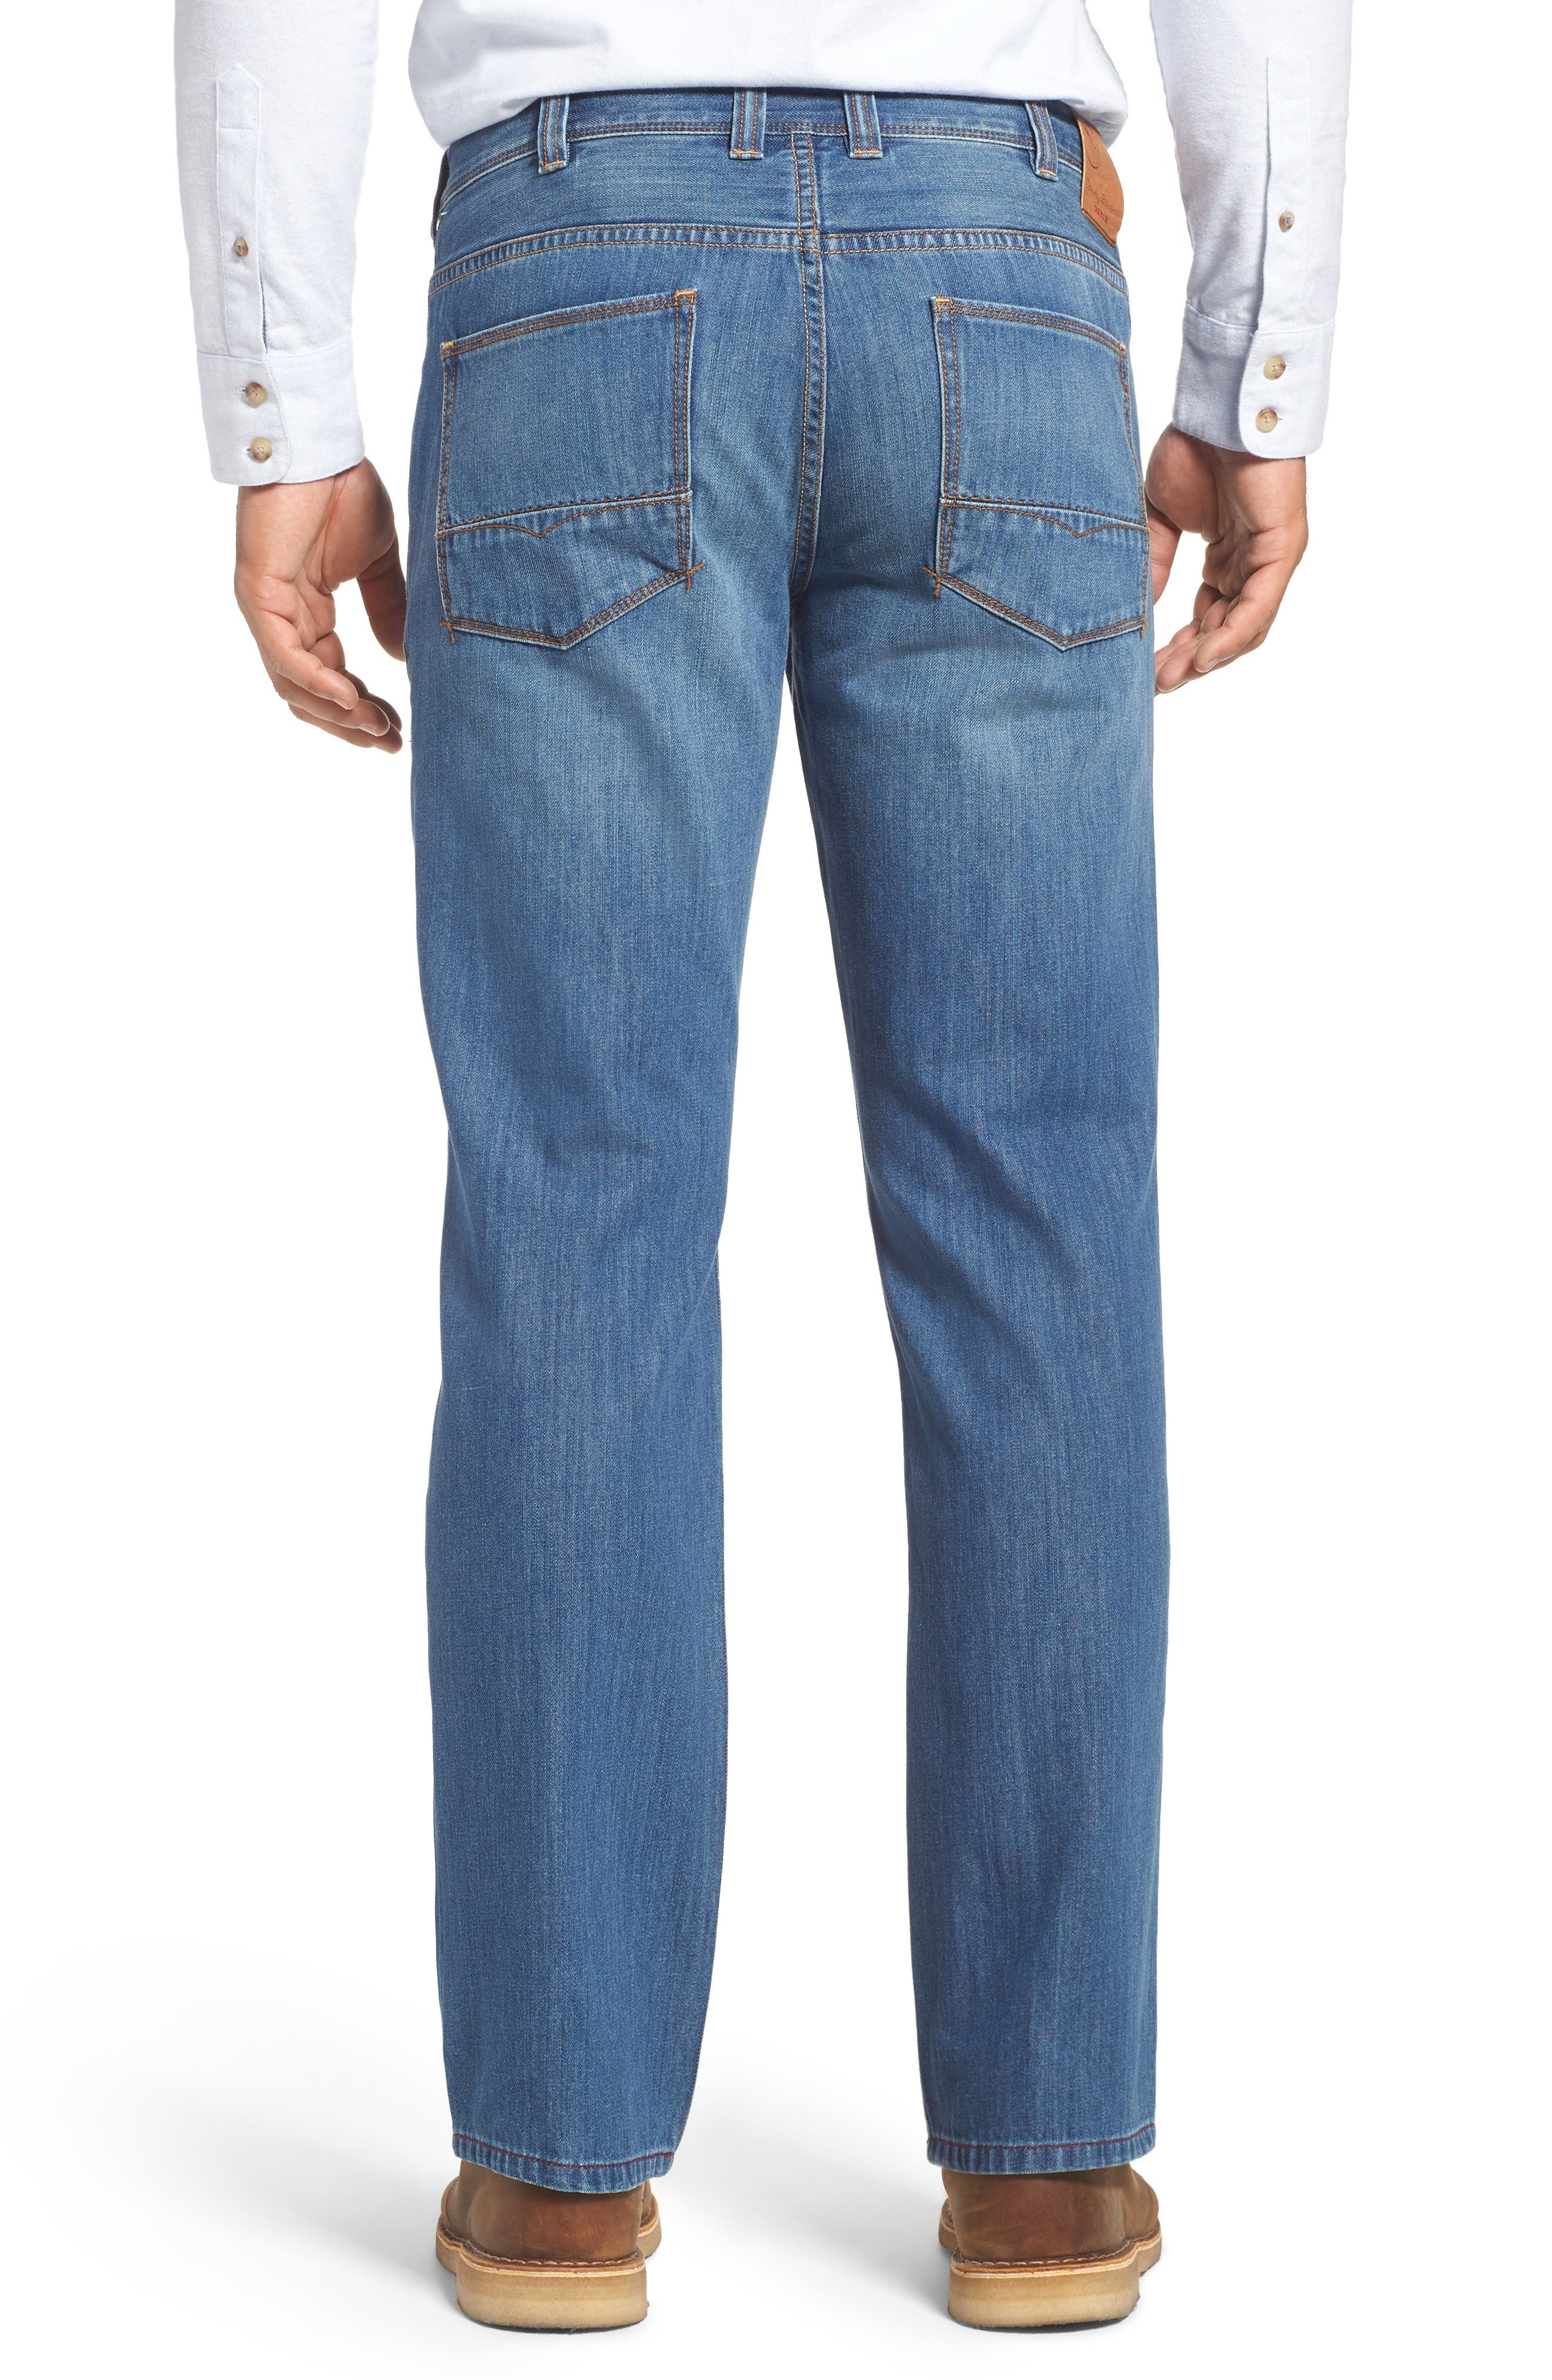 Barbados Straight Leg Jeans,                             Alternate thumbnail 2, color,                             Light Indigo Wash